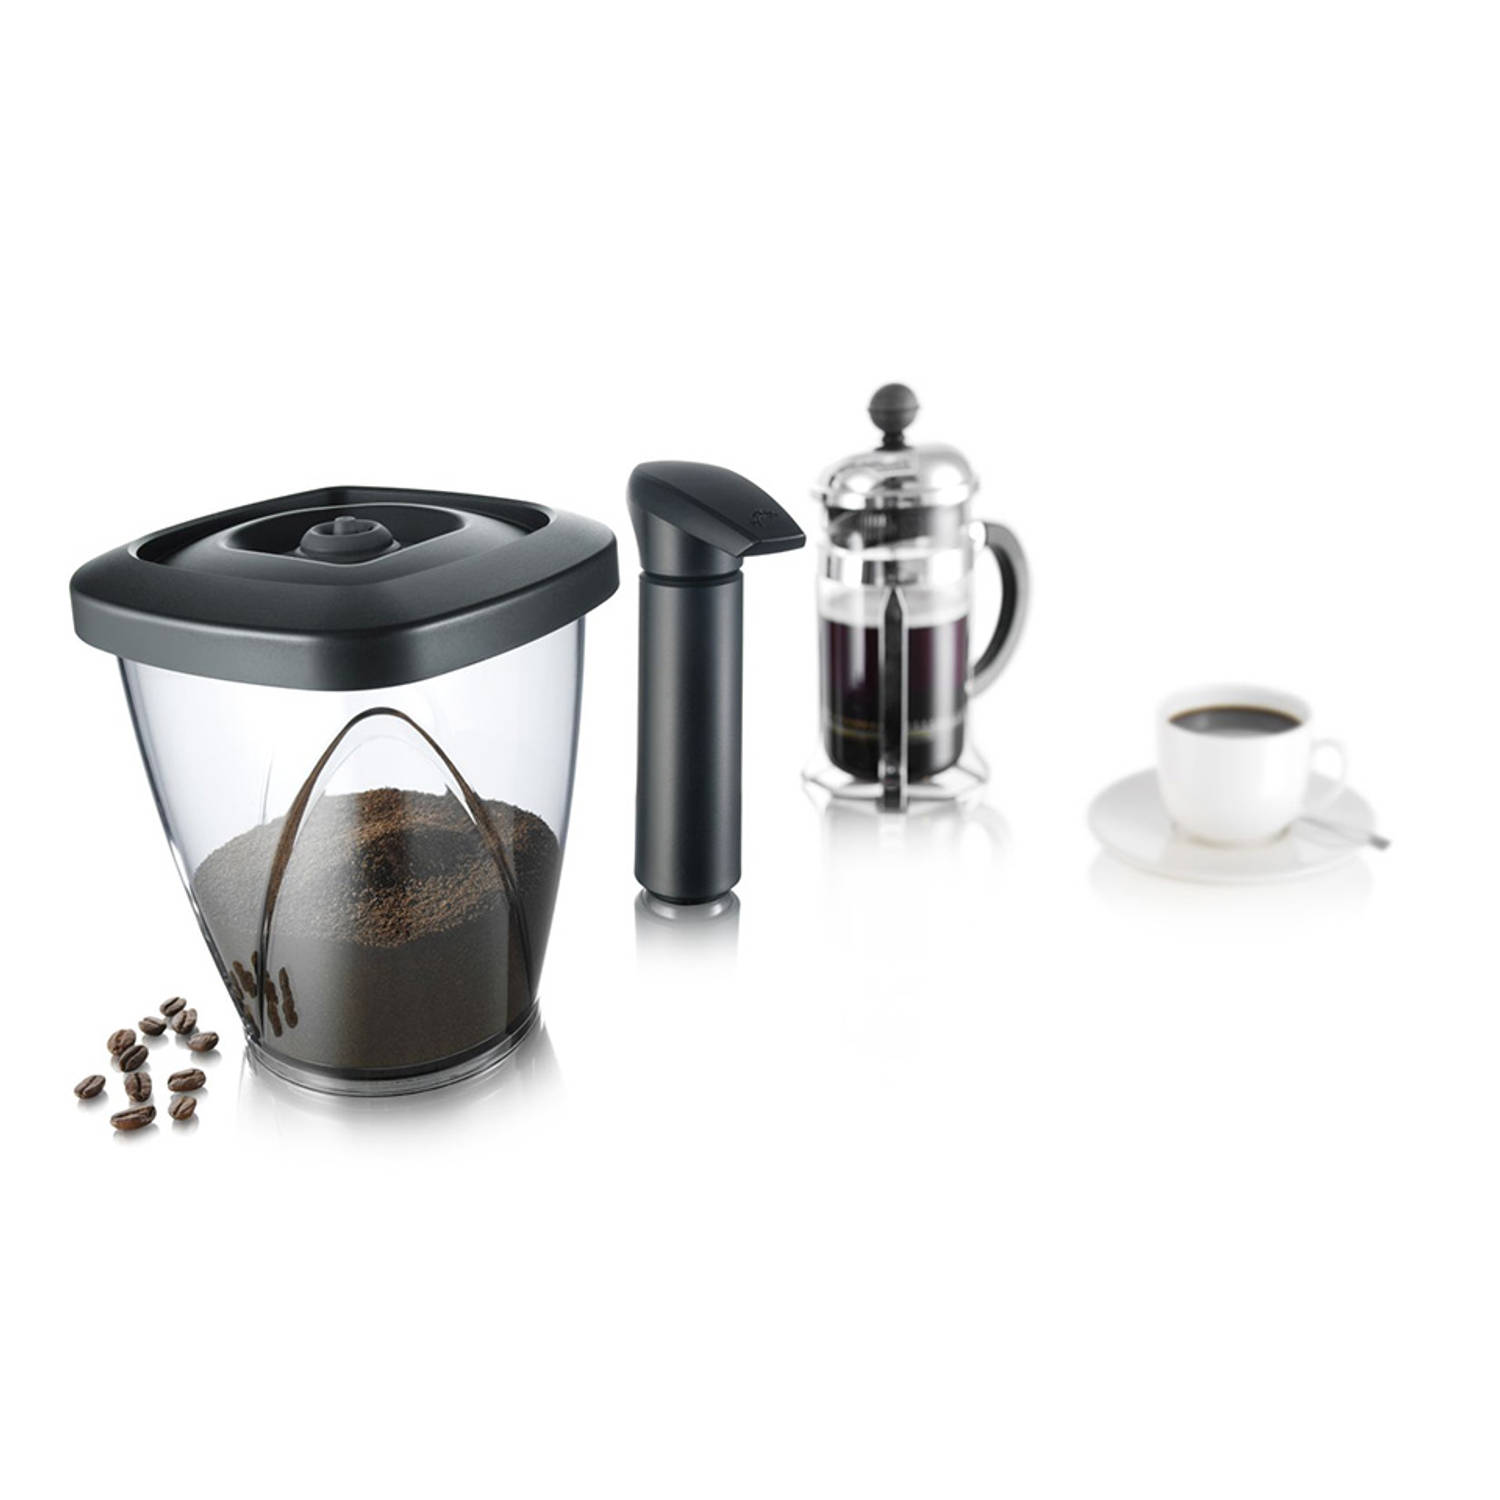 Tomorrow's Kitchen vacuum coffee saver - 1,3 L - 500 g